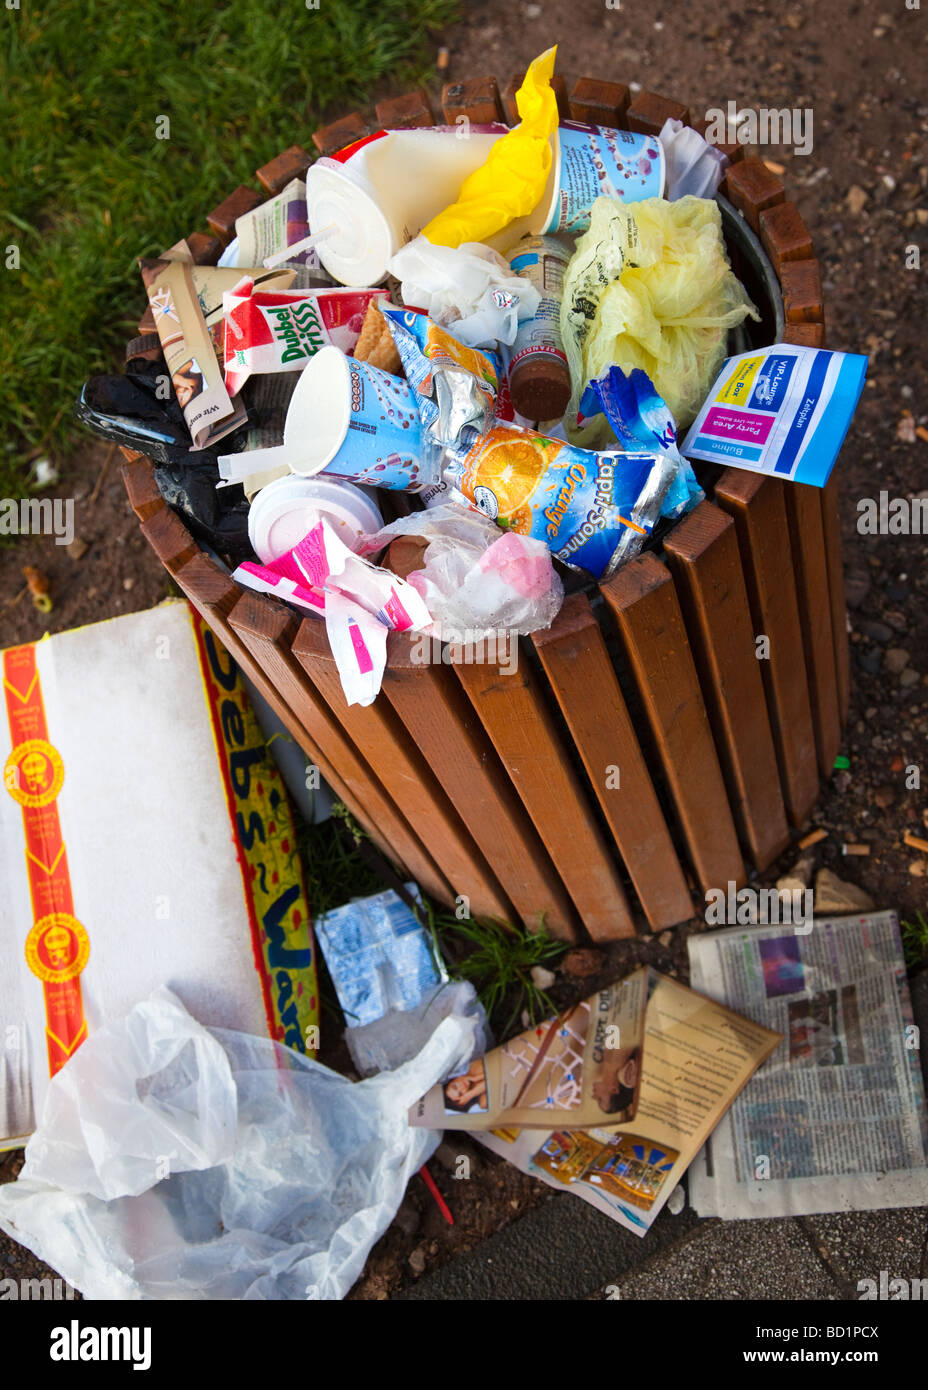 Litter bin overflowing in the street - Stock Image